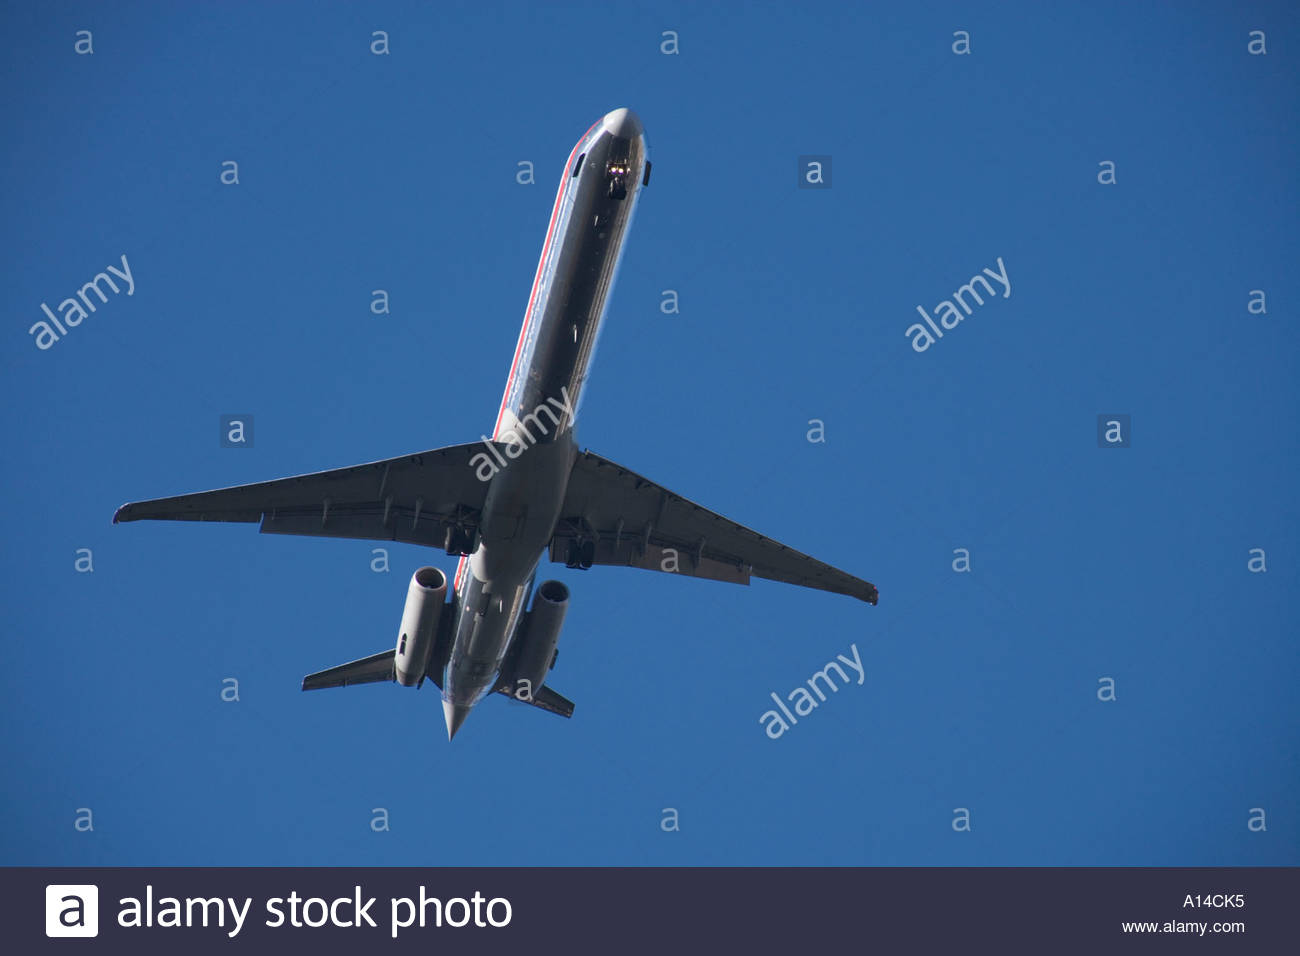 silhouette of an airplane flying low - Stock Image